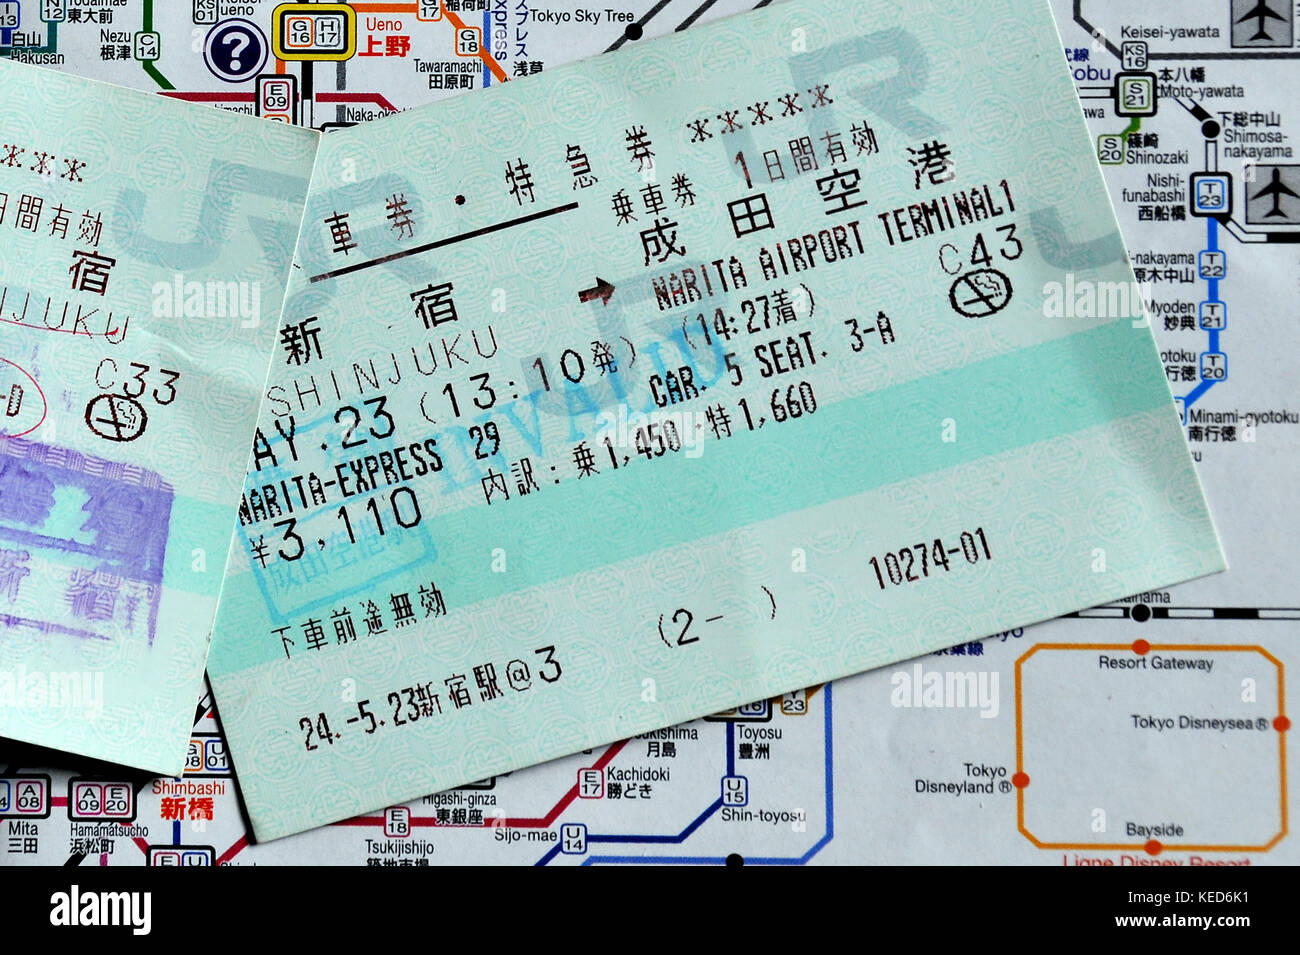 train ticket on map, Japan - Stock Image